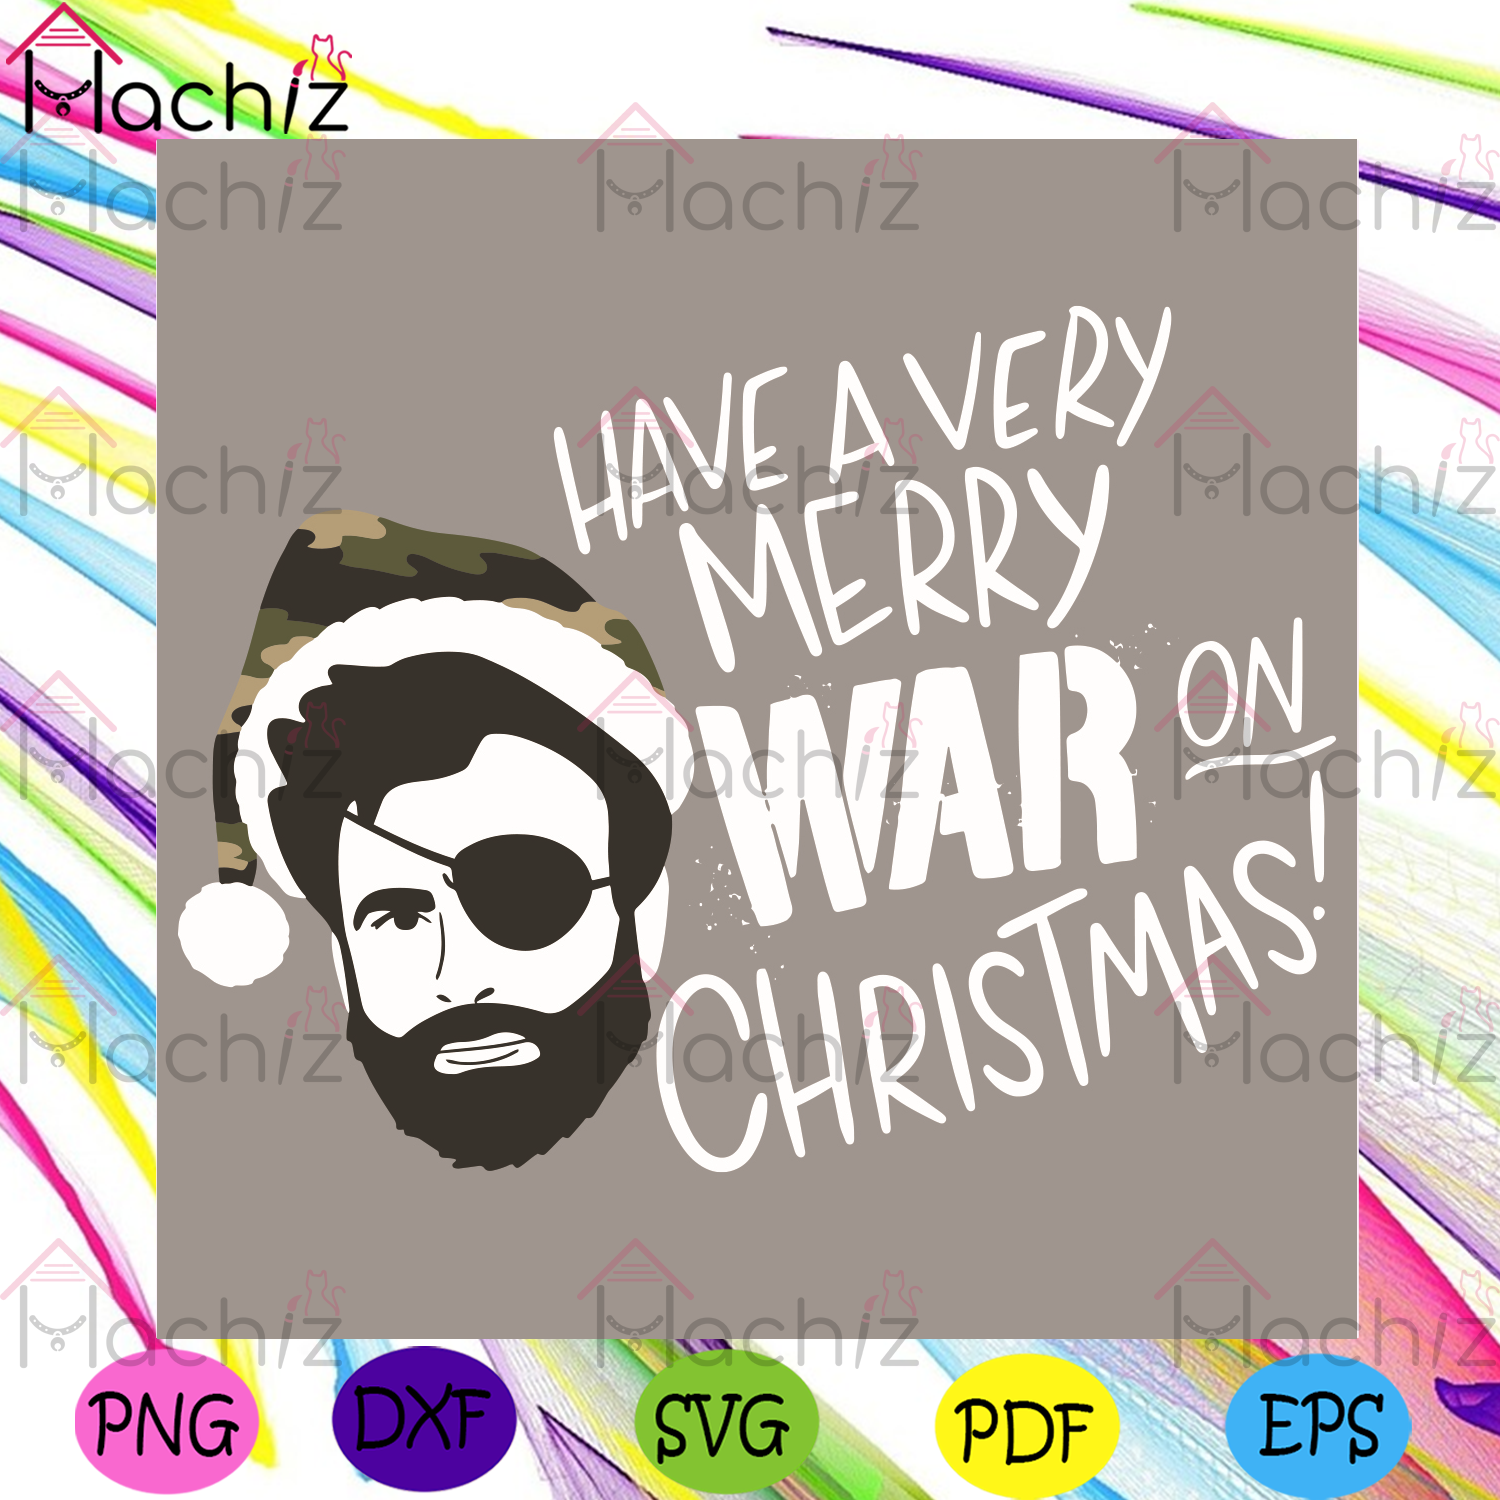 Have A Very Merry War On Christmas Svg, Christmas Svg, Cody Johnston Svg, Merry War Svg, Cody Showdy Svg, Cody Johnston Lovers Svg, Cheer Svg, Jolly Svg, Christmas Gifts Svg, Christmas Day Svg, Merry Christmas Svg,